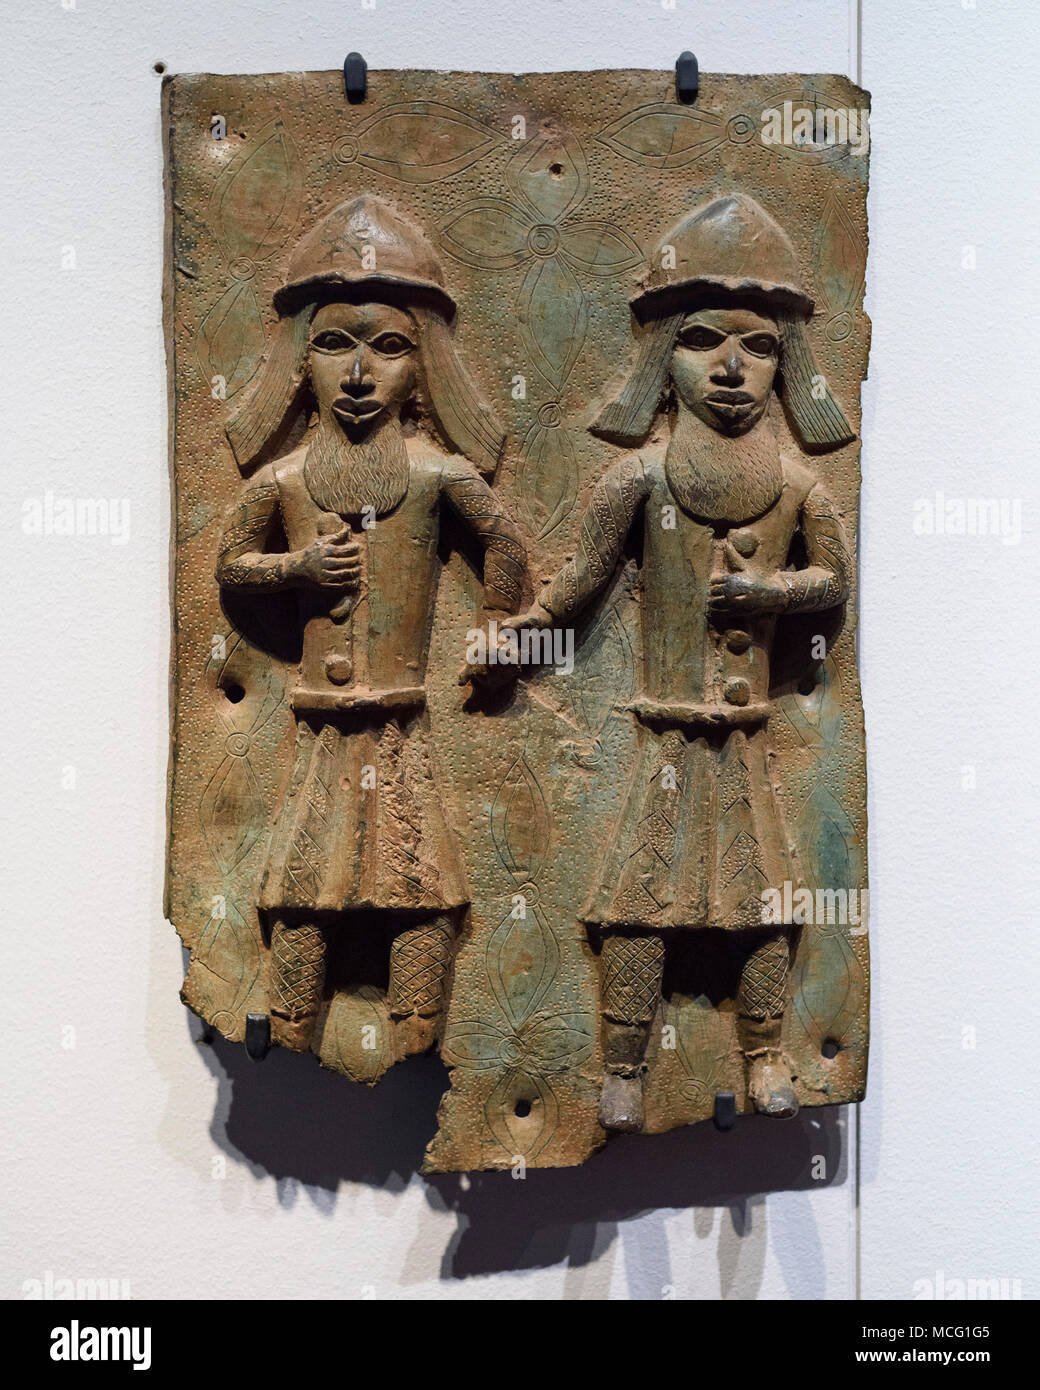 Berlin. Germany. Benin Bronzes. Representation of a Portuguese man, brass plaque. 16-17th century. From the royal court palace of the Kingdom of Benin - Stock Image